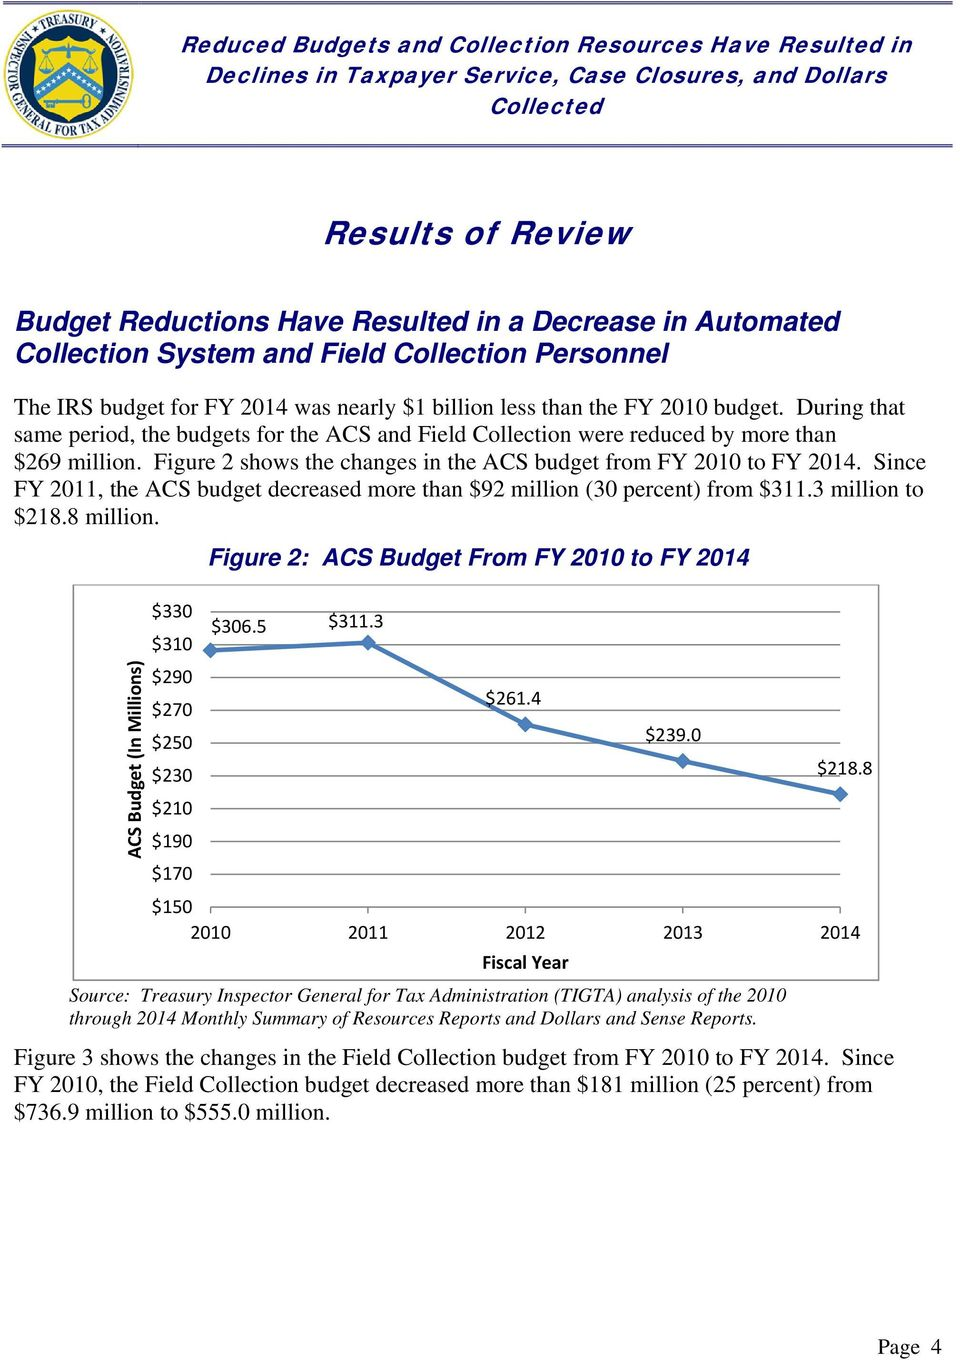 Since FY 2011, the ACS budget decreased more than $92 million (30 percent) from $311.3 million to $218.8 million. ACS Budget (In Millions) Figure 2: ACS Budget From FY 2010 to FY 2014 $330 $310 $306.